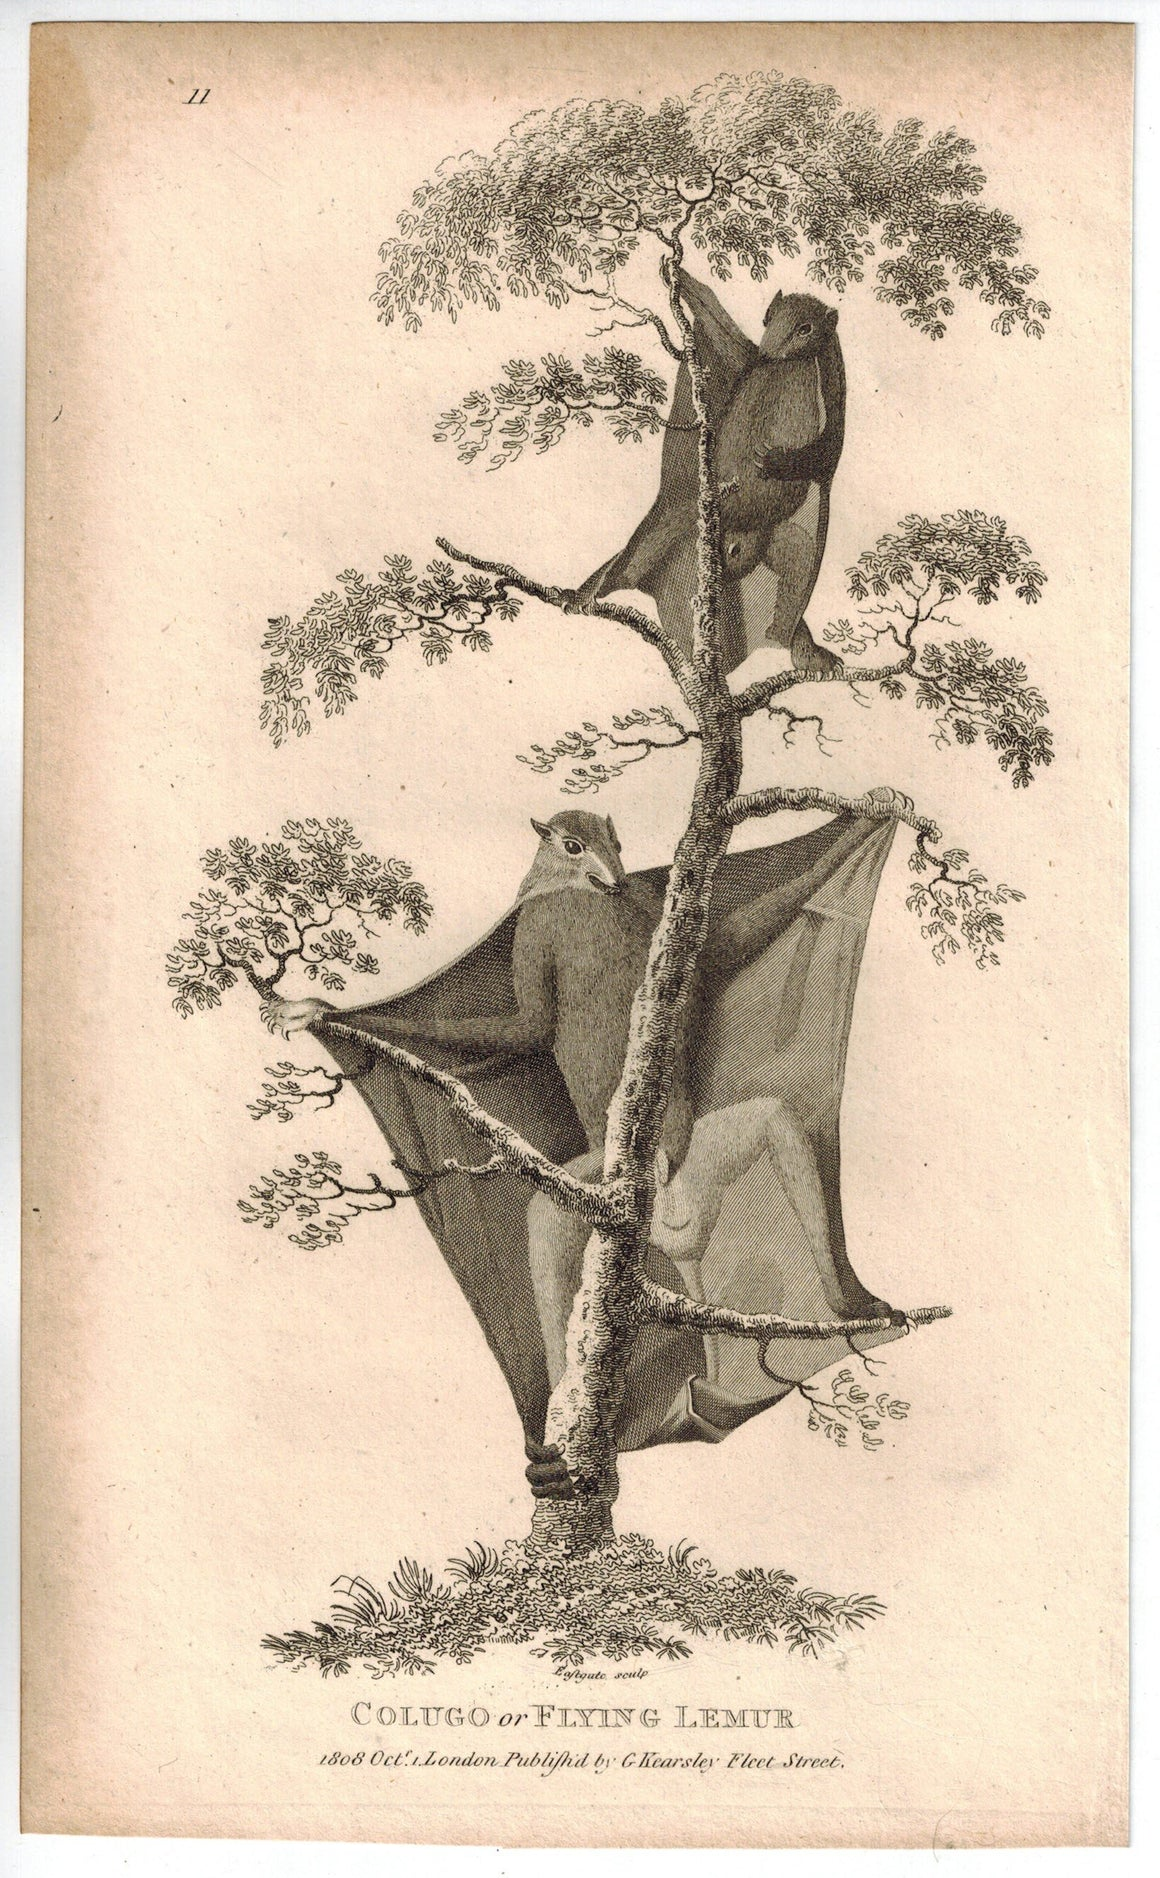 Colugo or Flying Lemur Print 1809 George Shaw Original Engraving